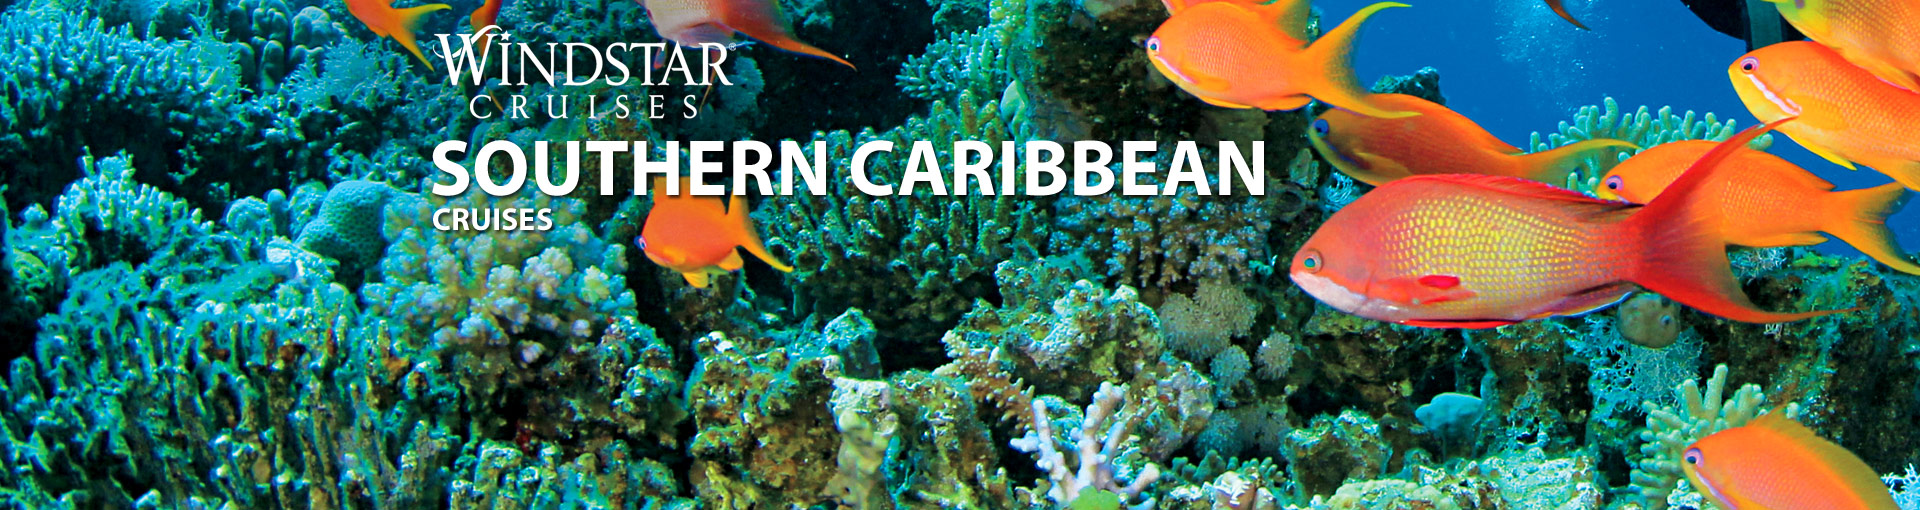 Windstar Cruises Southern Caribbean